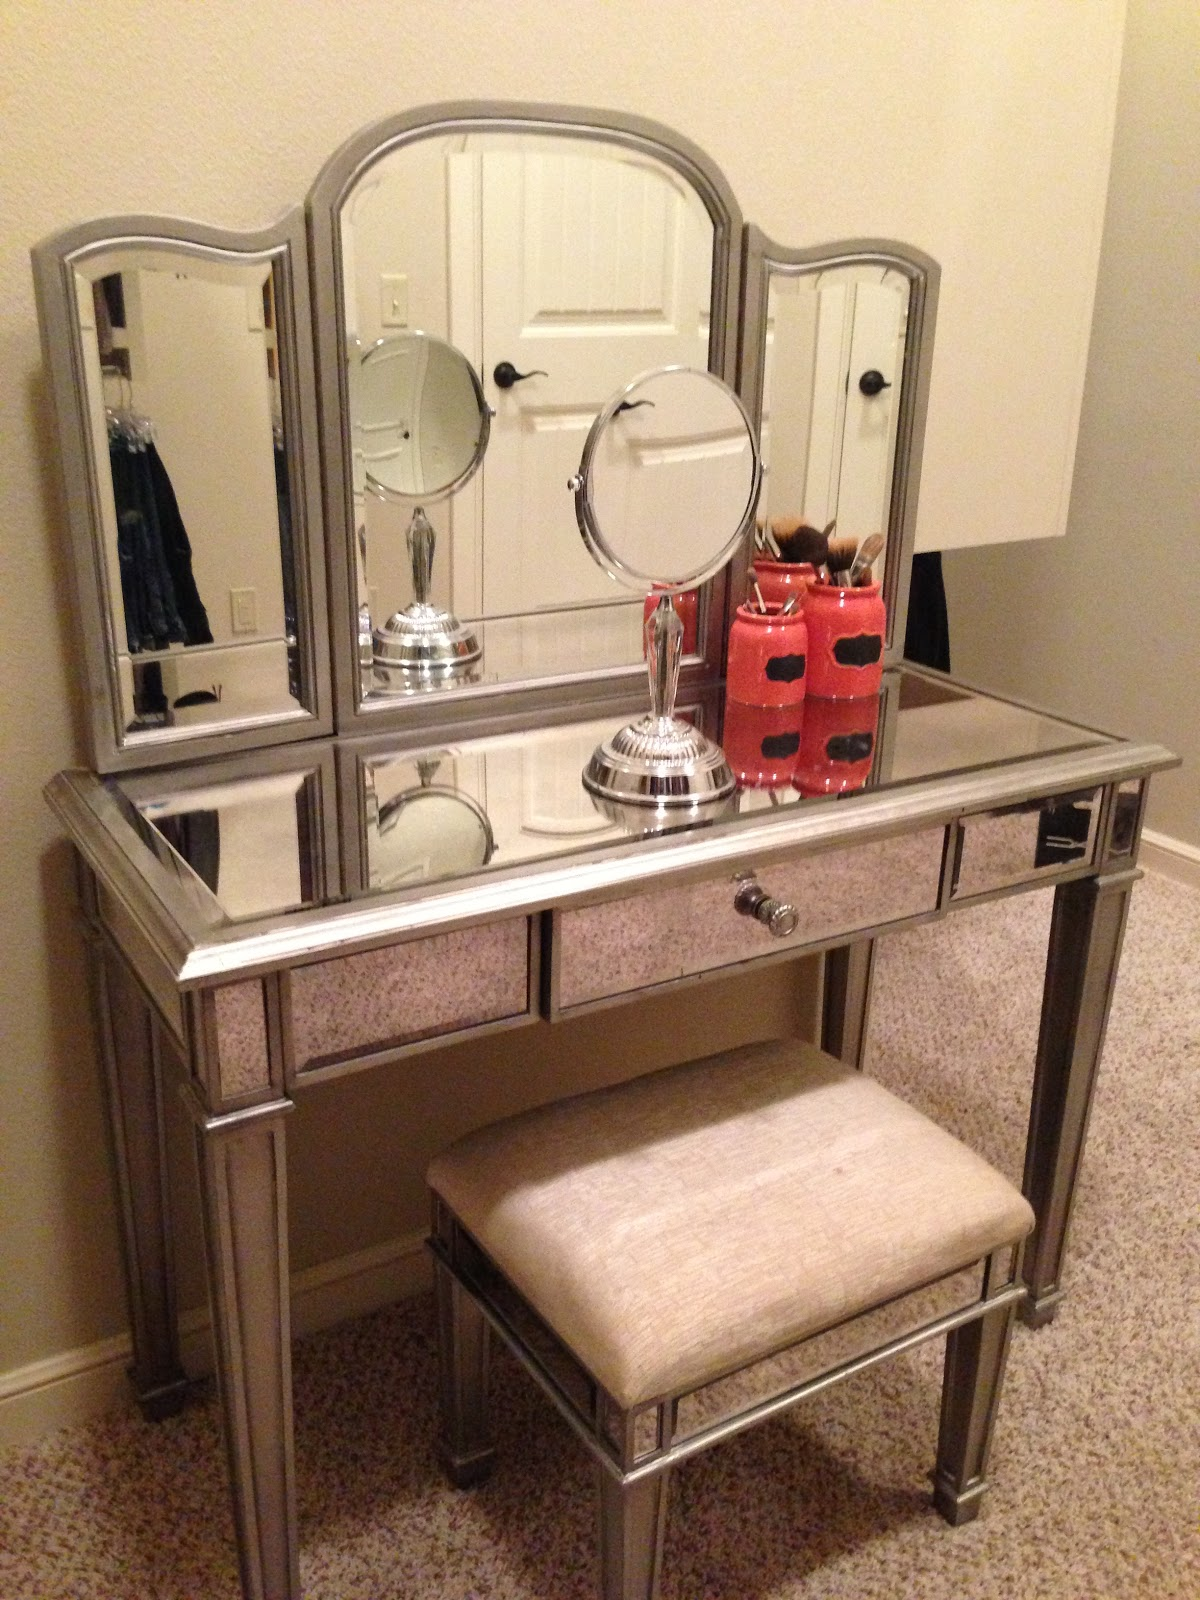 Awesome mirrored vanity for home furniture and vanity mirror with lights